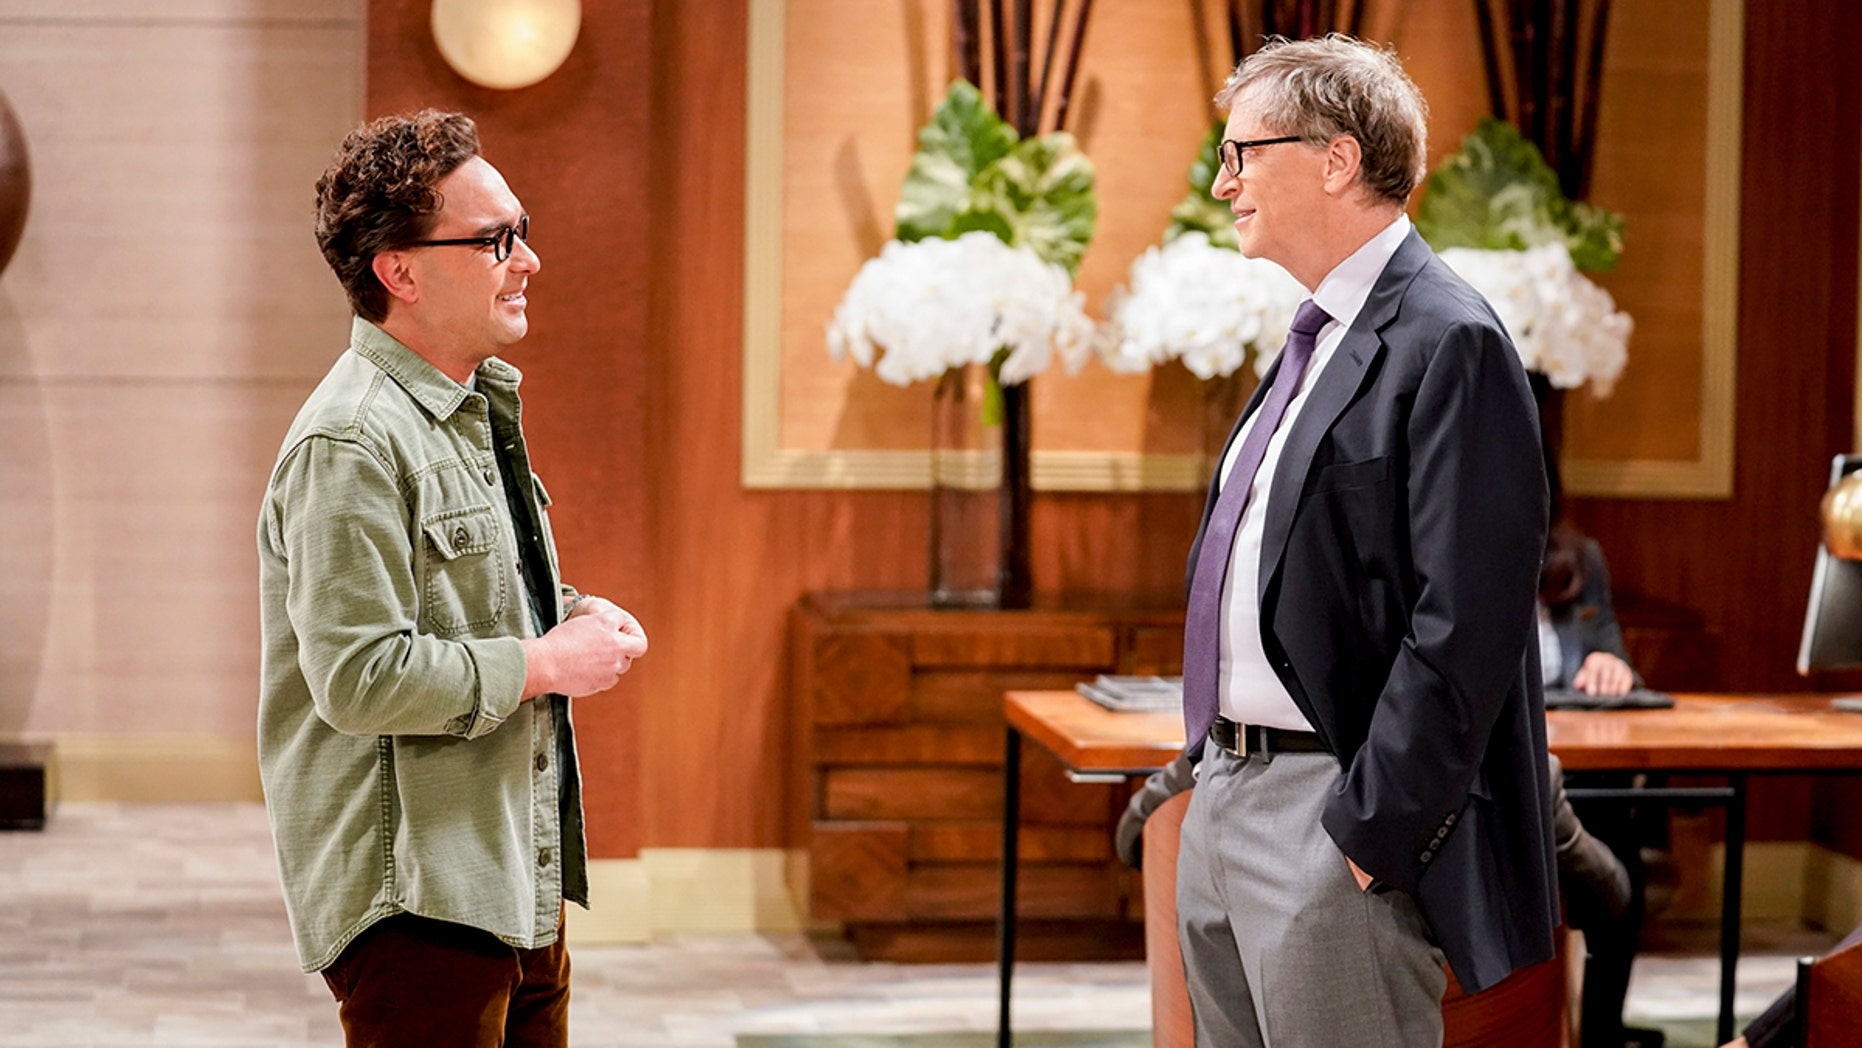 The Gates Excitation  Pictured: Leonard Hofstadter (Johnny Galecki) and Bill Gates (Himself). Penny gets the opportunity to host Bill Gates at work when his company wants to partner with her pharmaceutical company.  Also, Leonard, Koothrappali, and Wolowitz do everything in their power to meet him, while Sheldon thinks he is the victim of an April Fools prank, on THE BIG BANG THEORY, Thursday, March 29 (8:00-8:31 PM, ET/PT), on the CBS Television Network. Photo: Erik Voake/CBS 2018 CBS Broadcasting, Inc. All Rights Reserved.